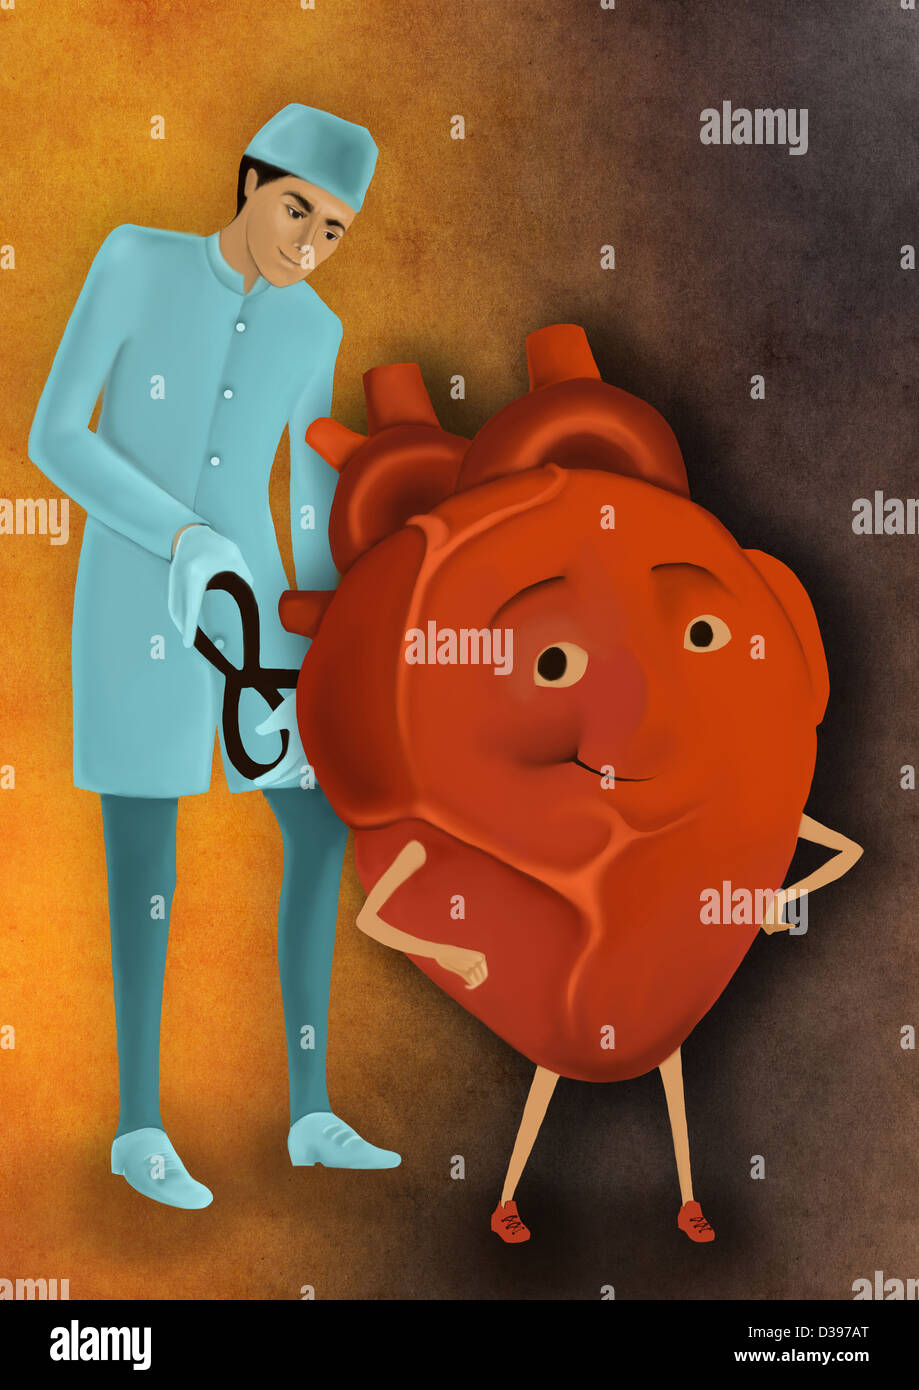 Biomedical illustration of surgeon whirling wind-up key of heart depicting heart treatment - Stock Image